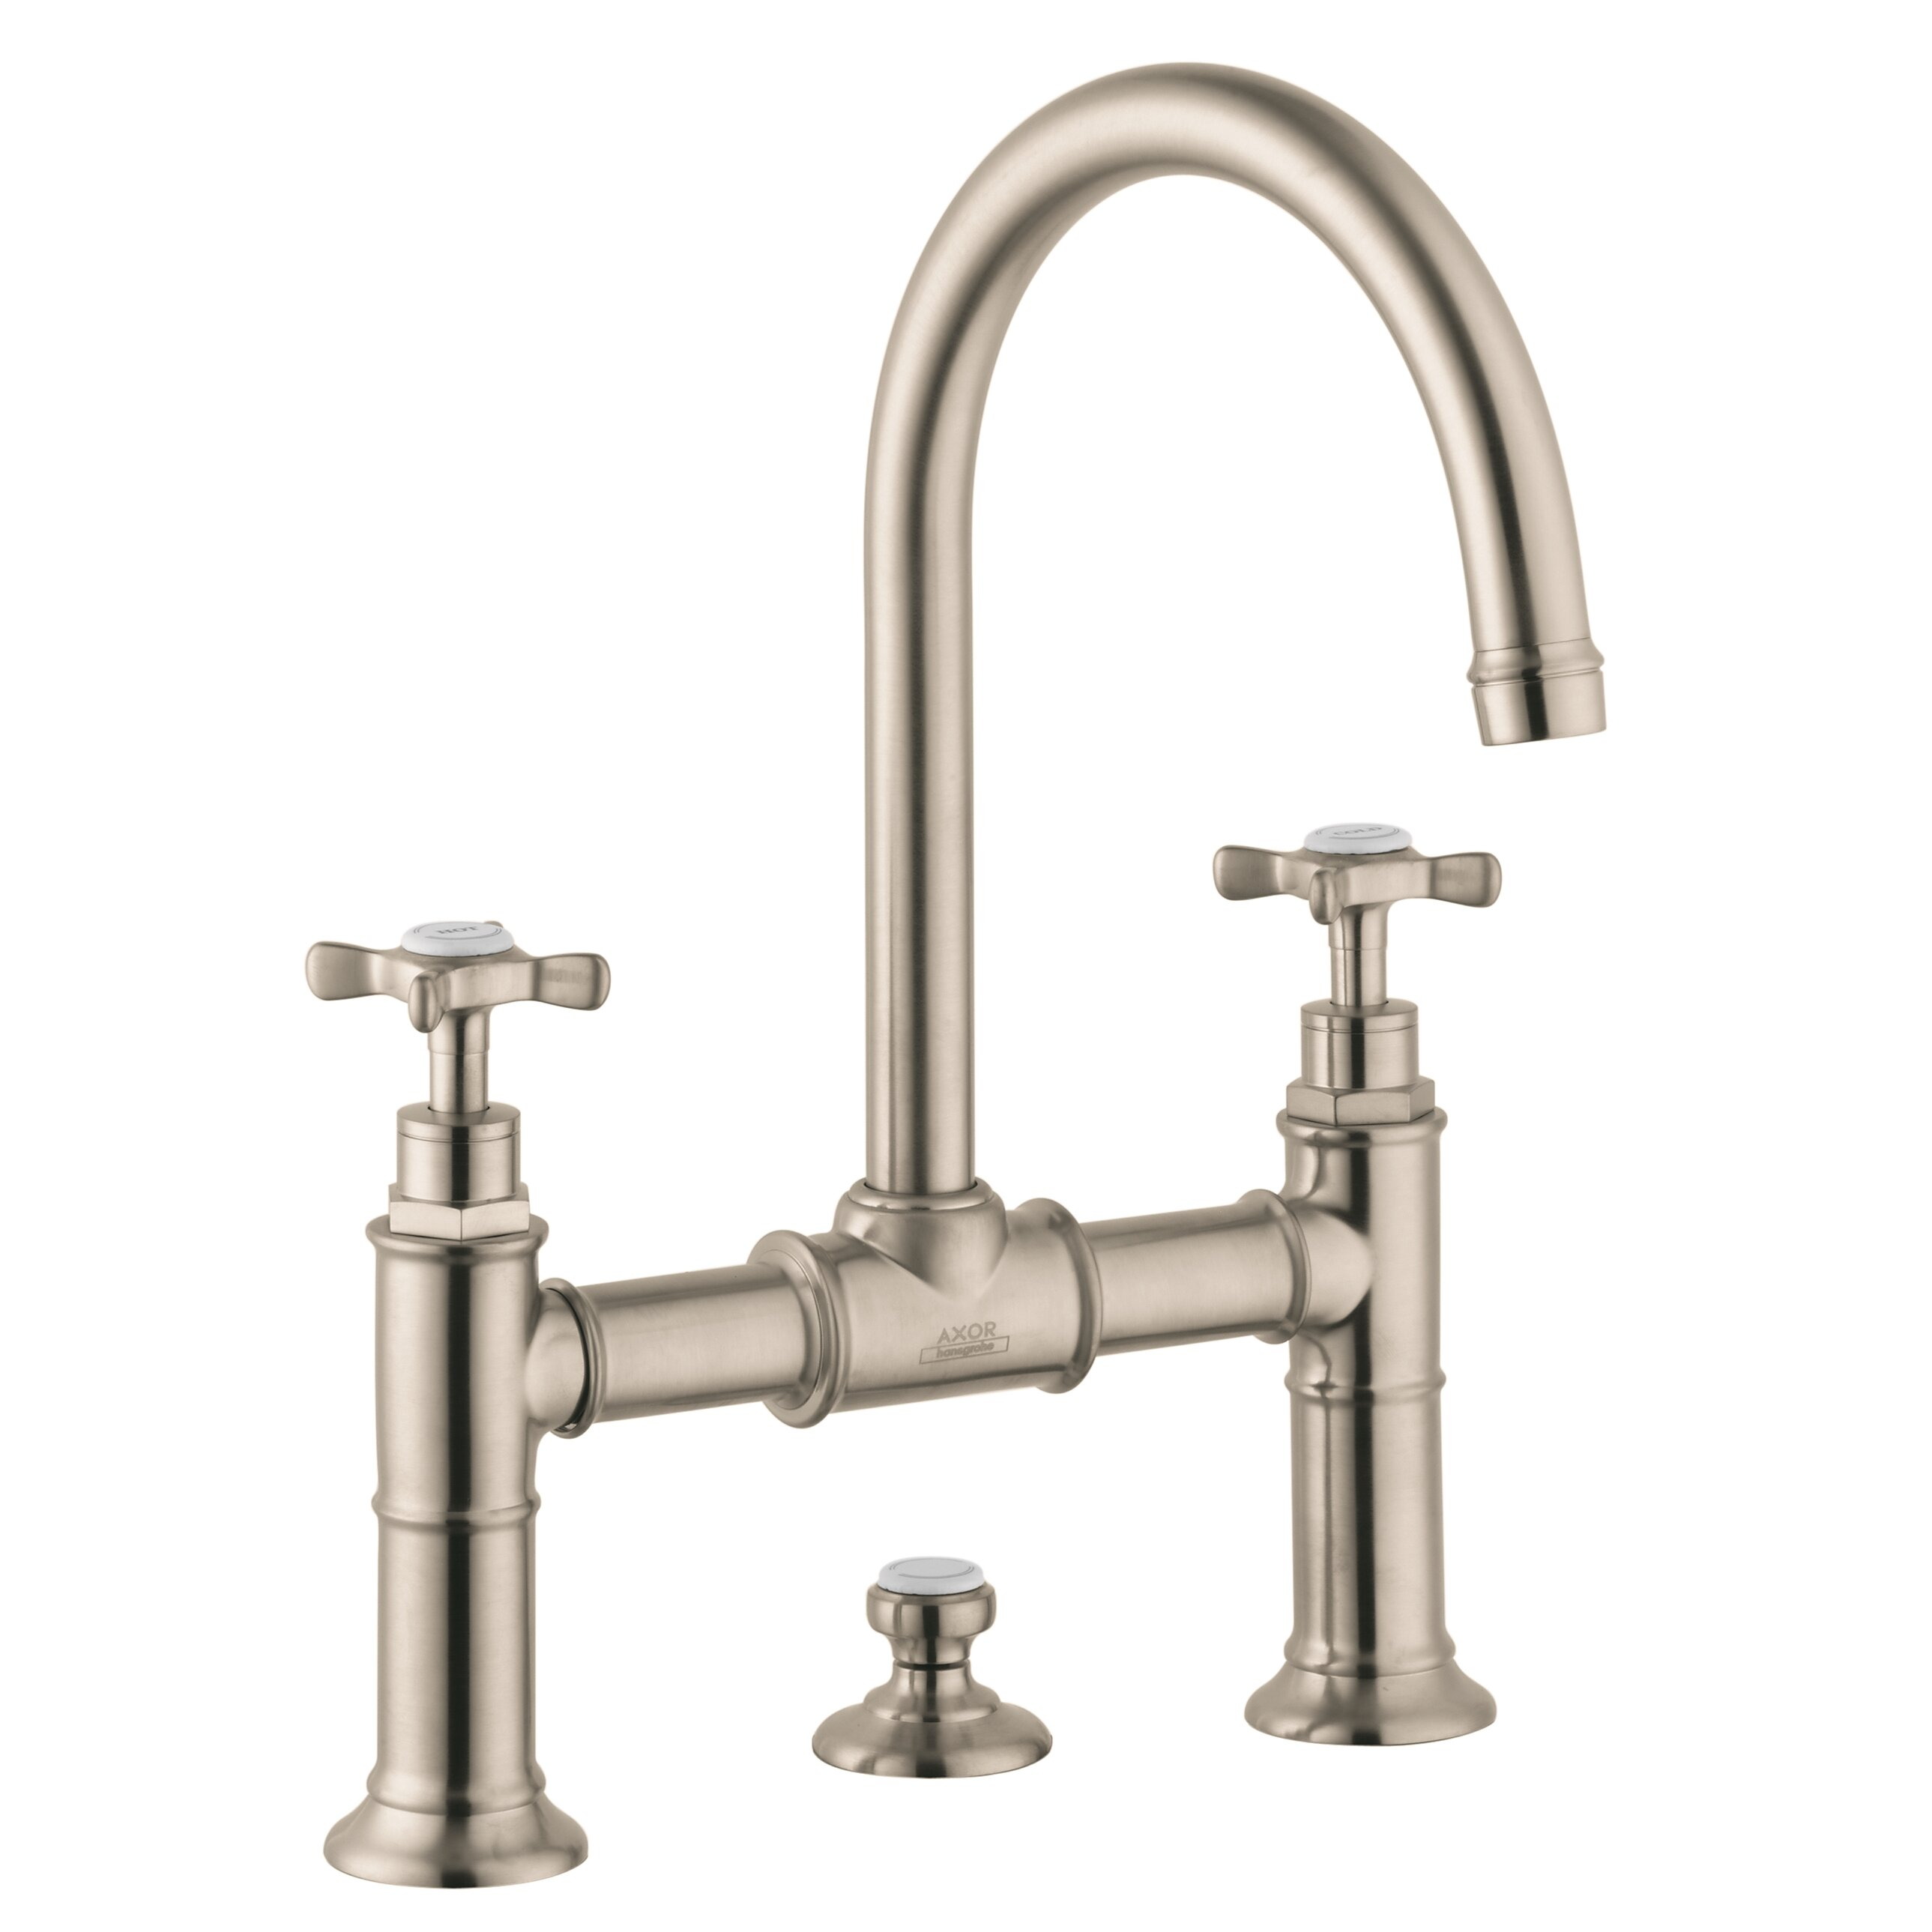 Hansgrohe Kitchen Faucet Model